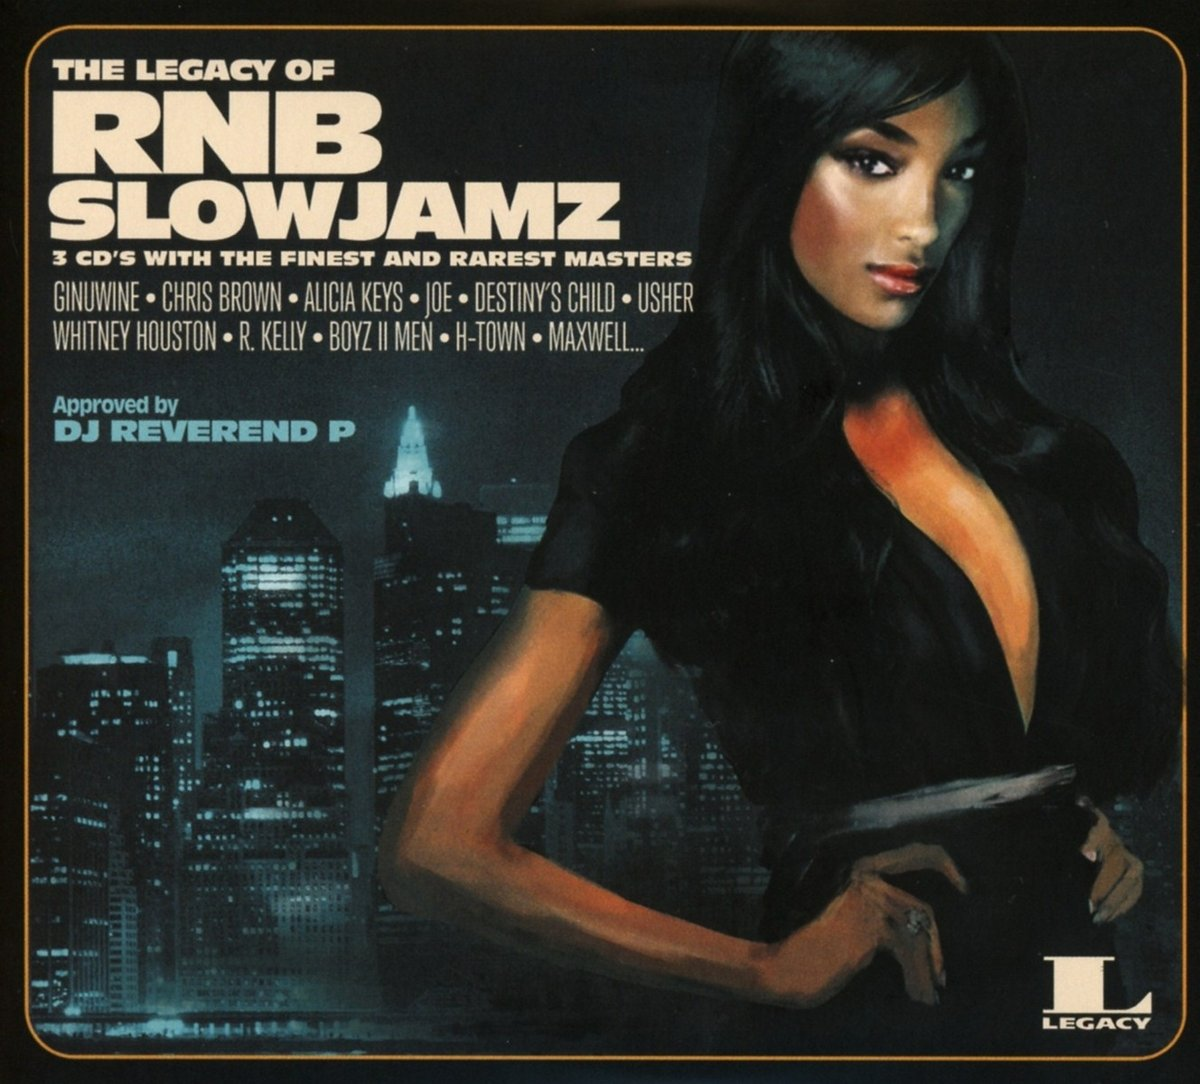 VA - The Legacy Of RNB Slowjamz (2016) [FLAC] Download